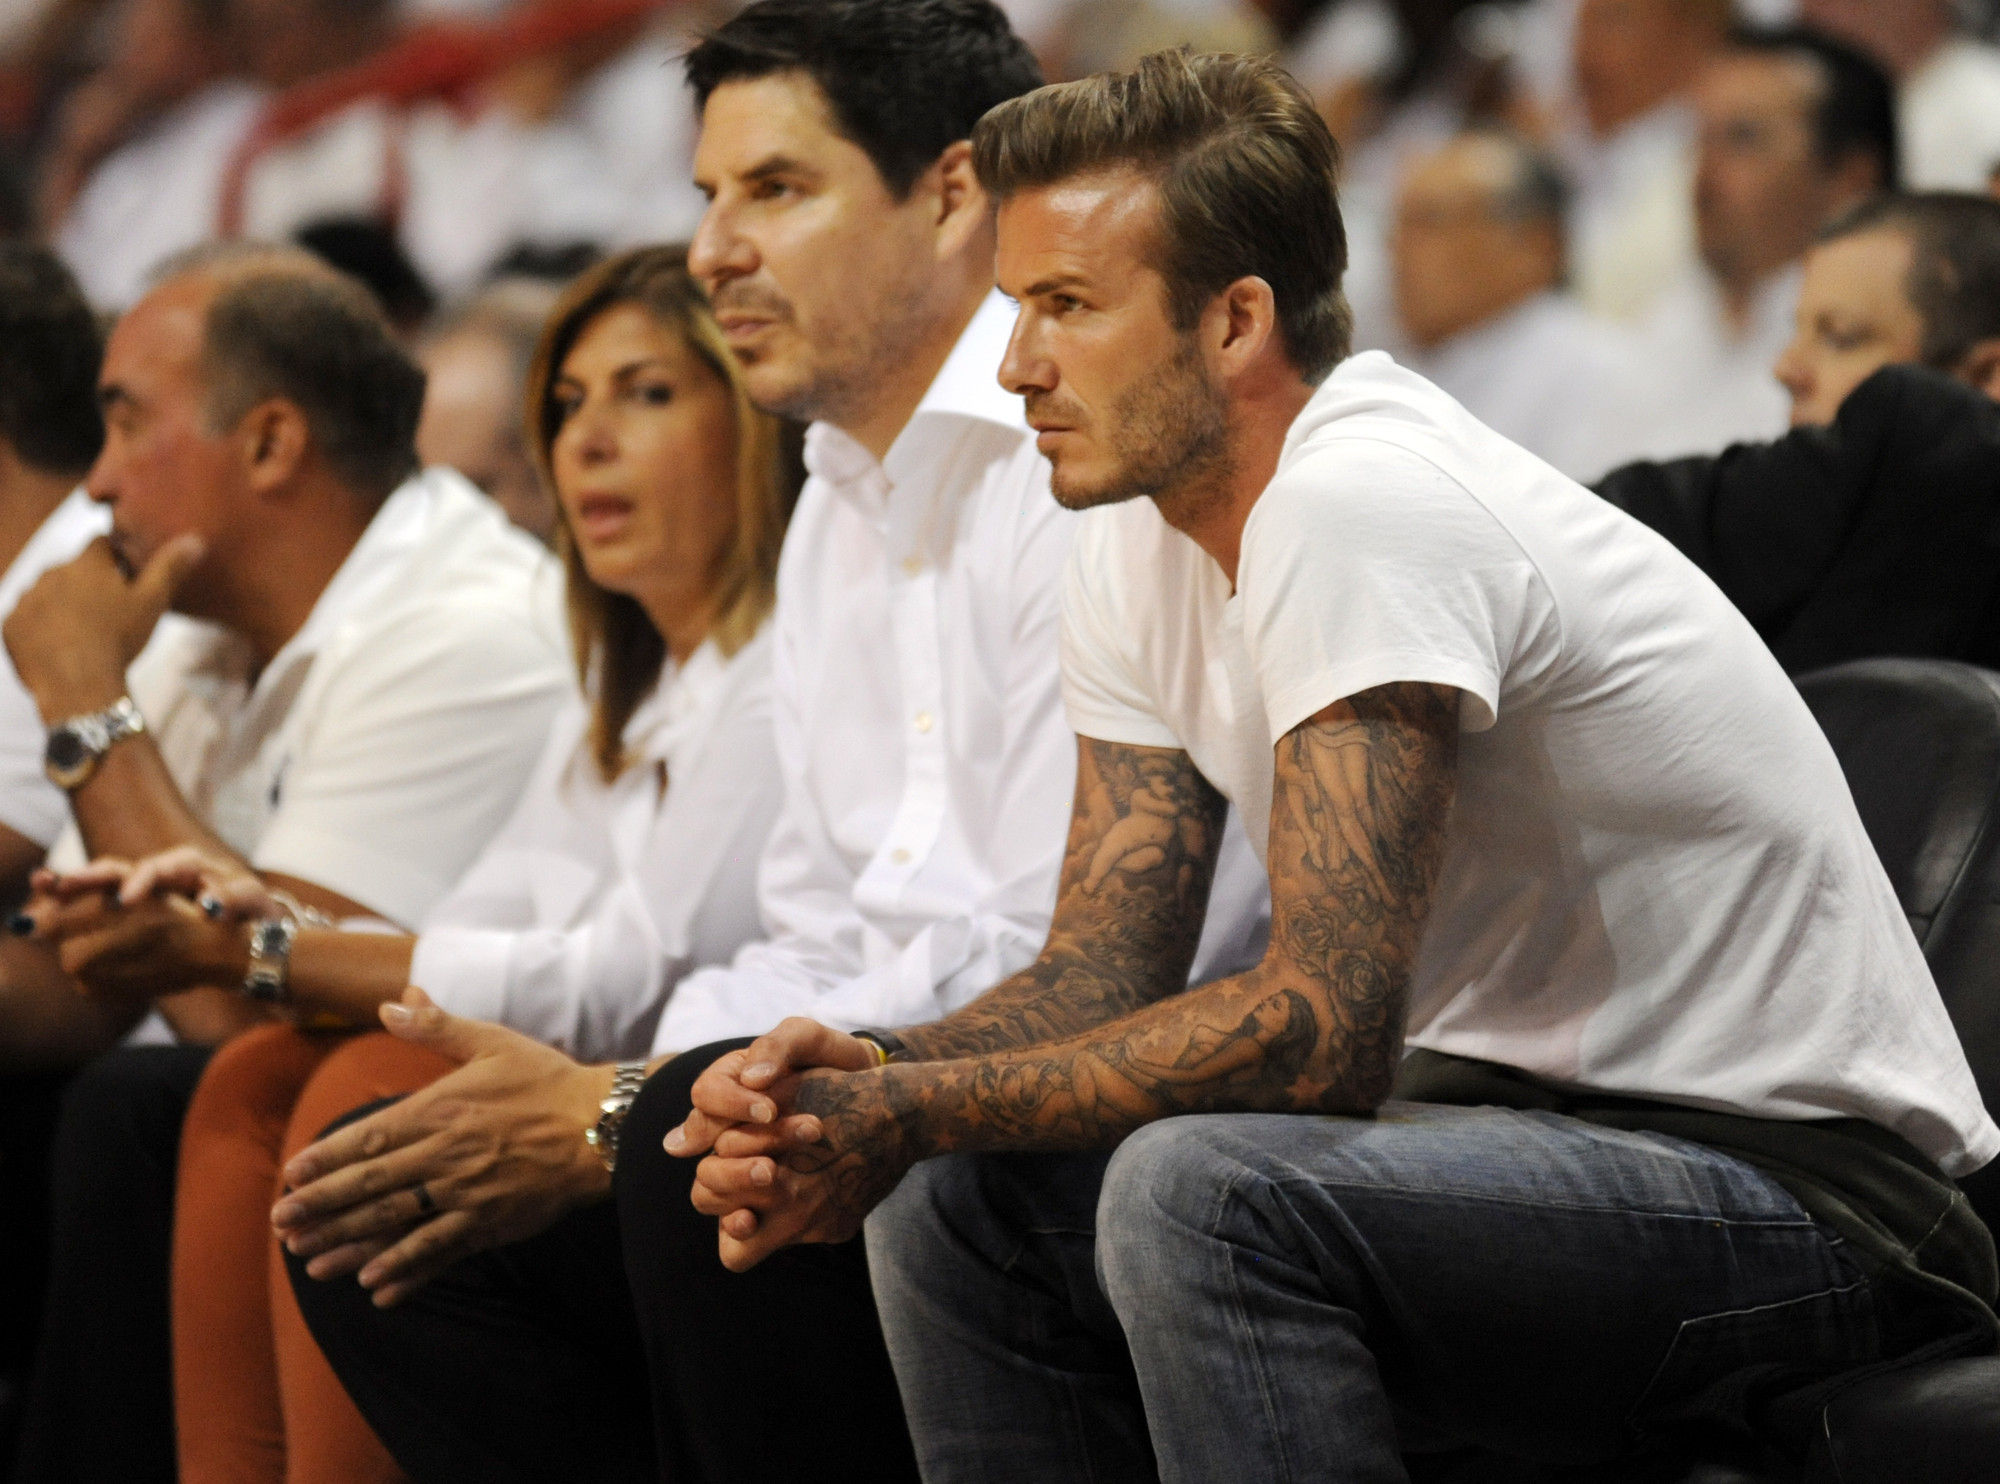 Celebs spotted at Miami Heat games - David Beckham